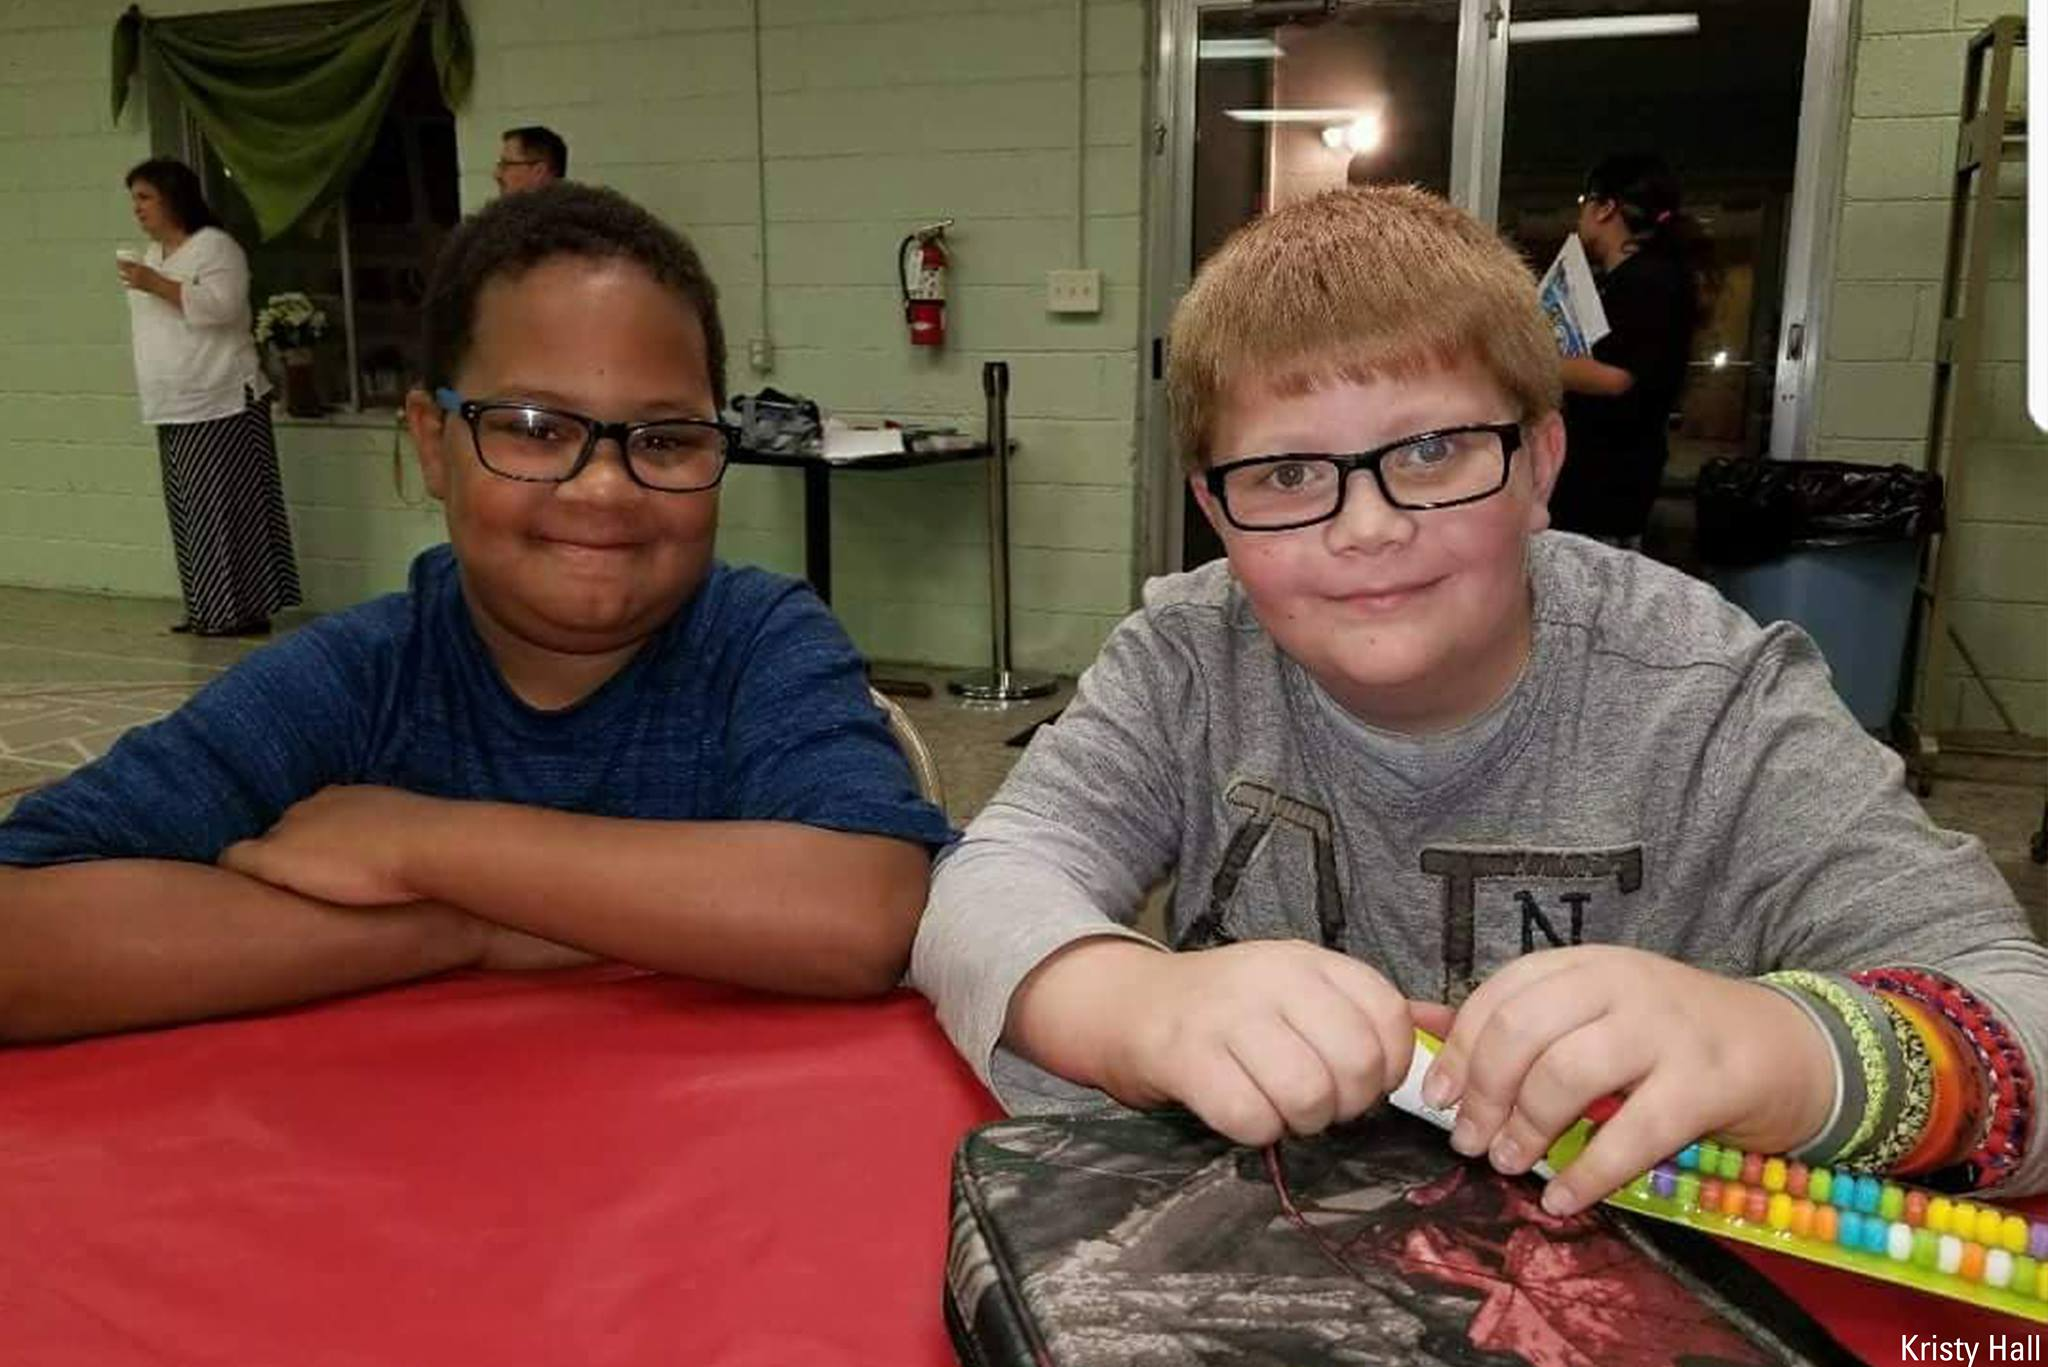 KJ Gross and Kaleb Klakulak became best friends in second grade. Kristy Ha;;/Facebook